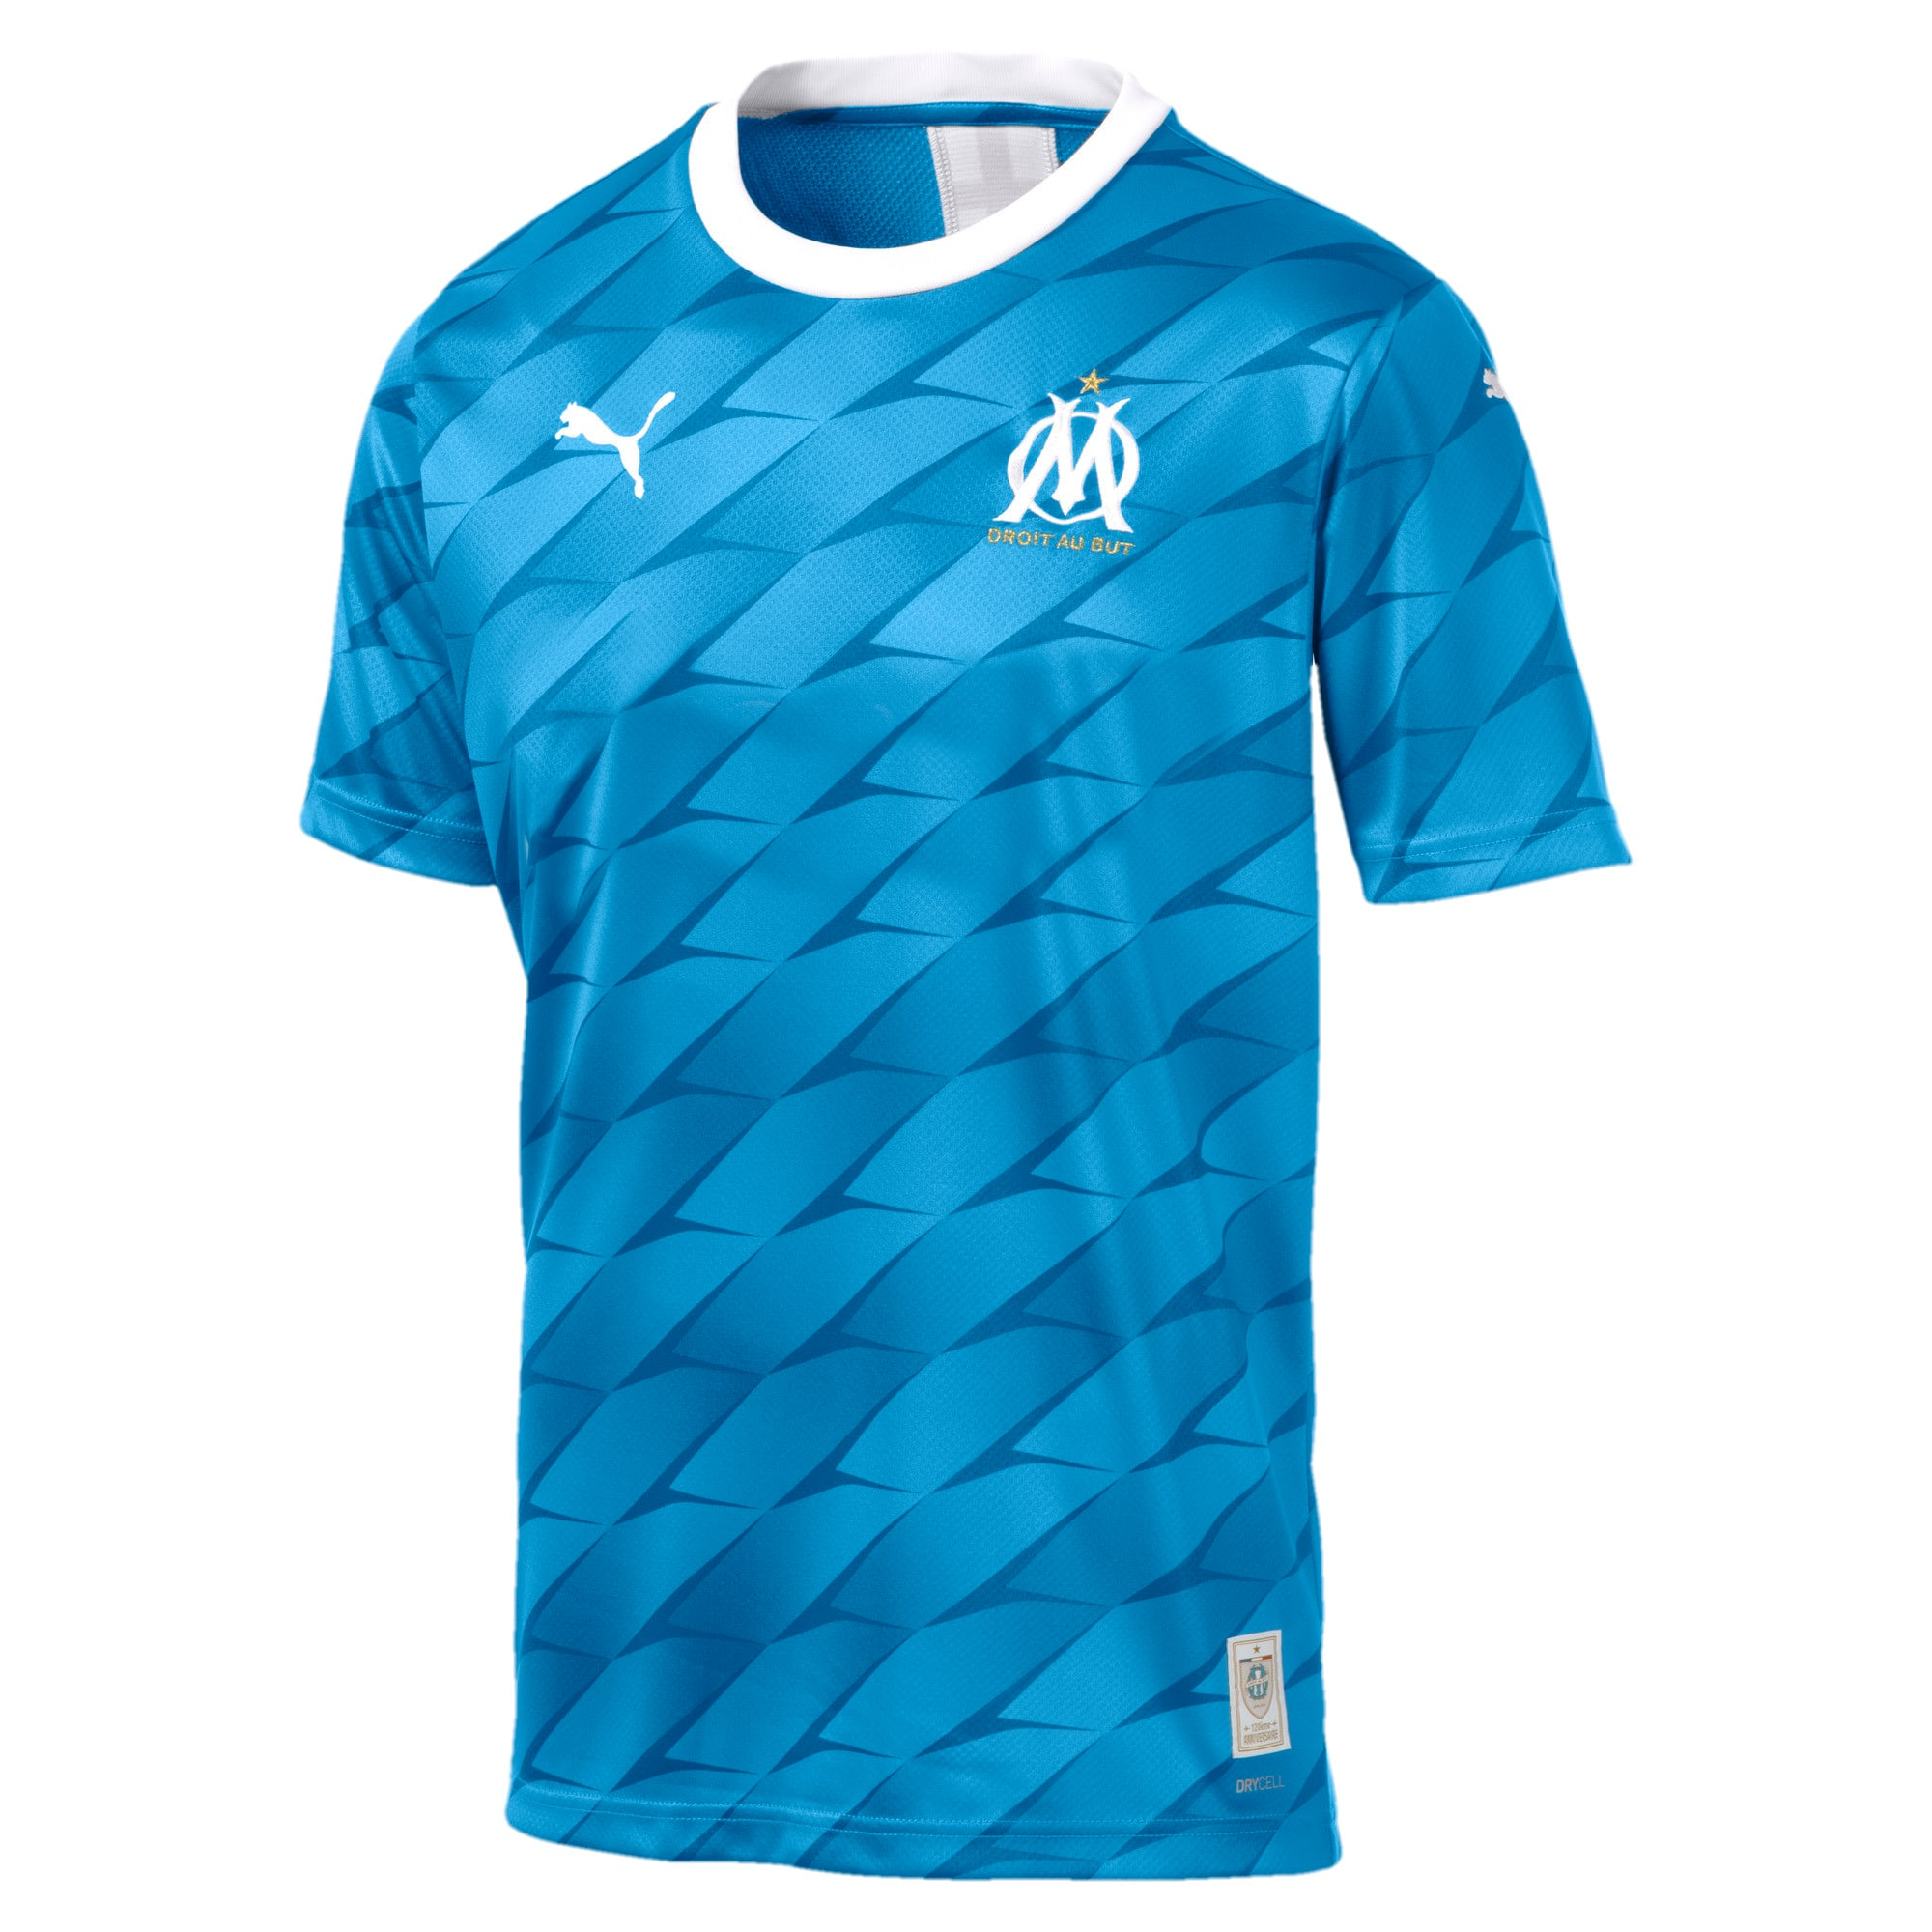 Thumbnail 1 of Olympique de Marseille Herren Replica Auswärtstrikot, Bleu Azur-Puma White, medium